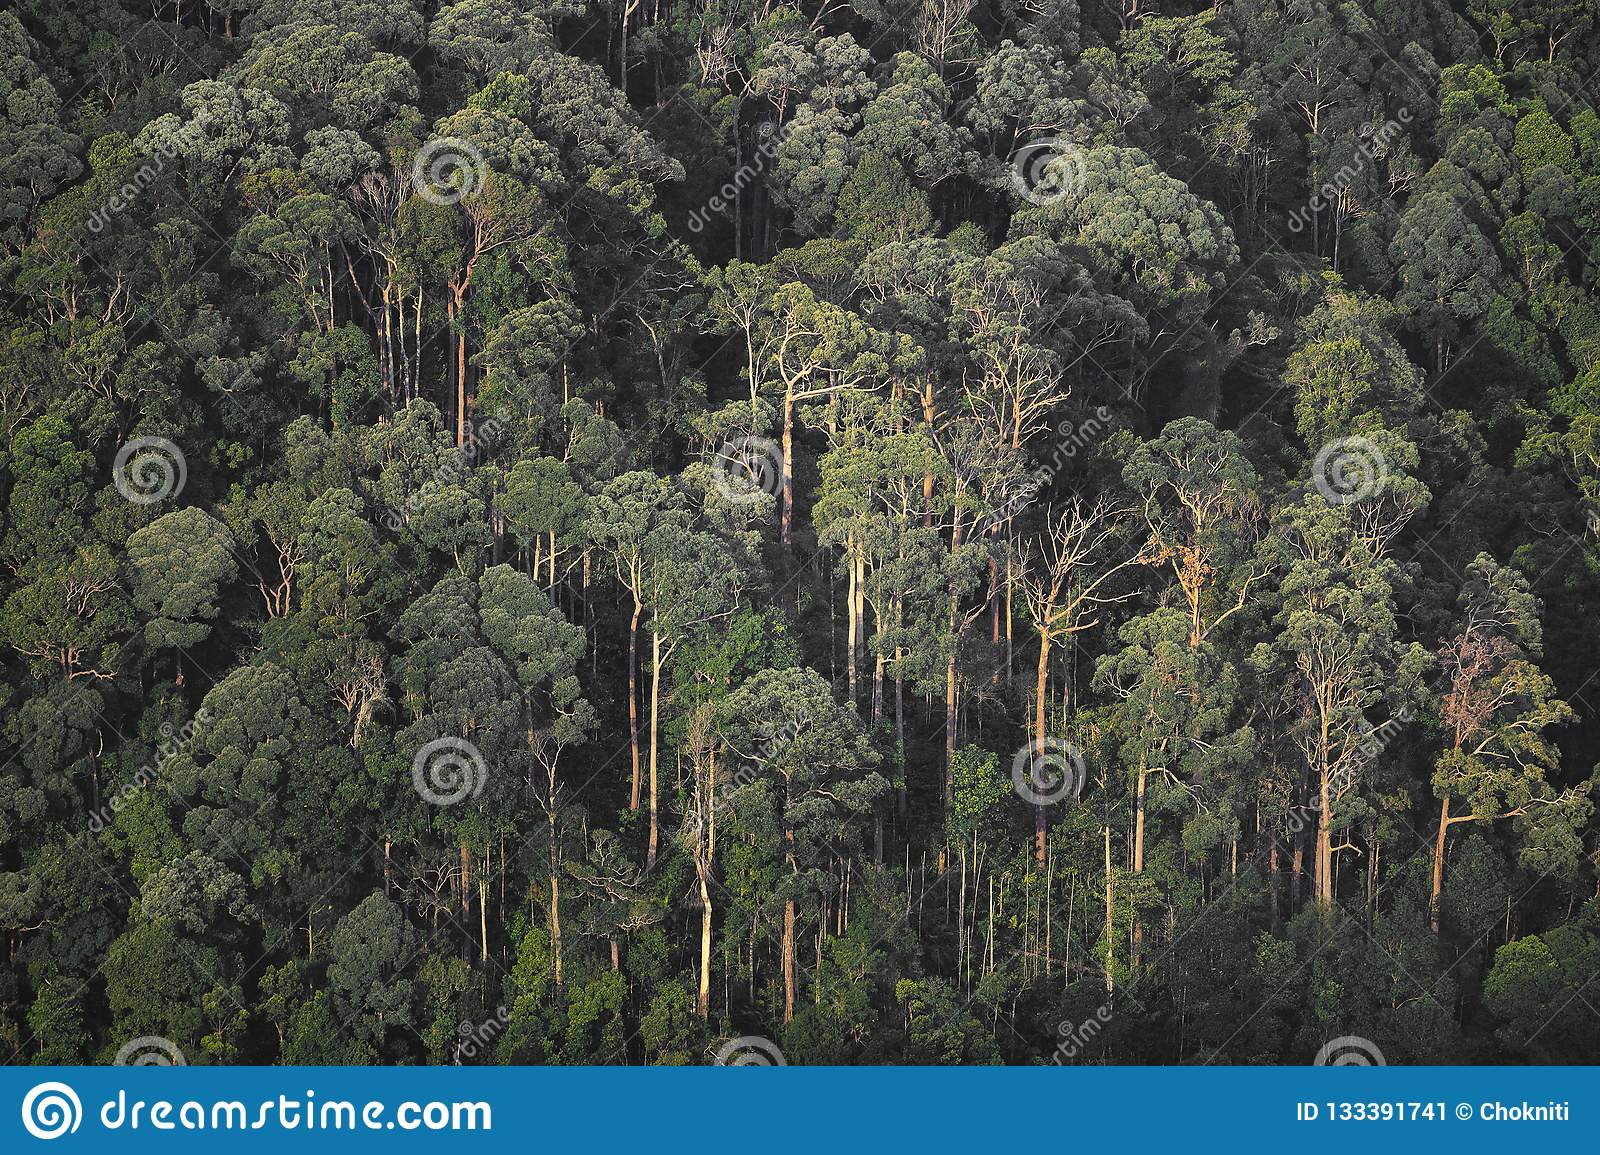 forest, nature landscape view of tropical forest with layers of